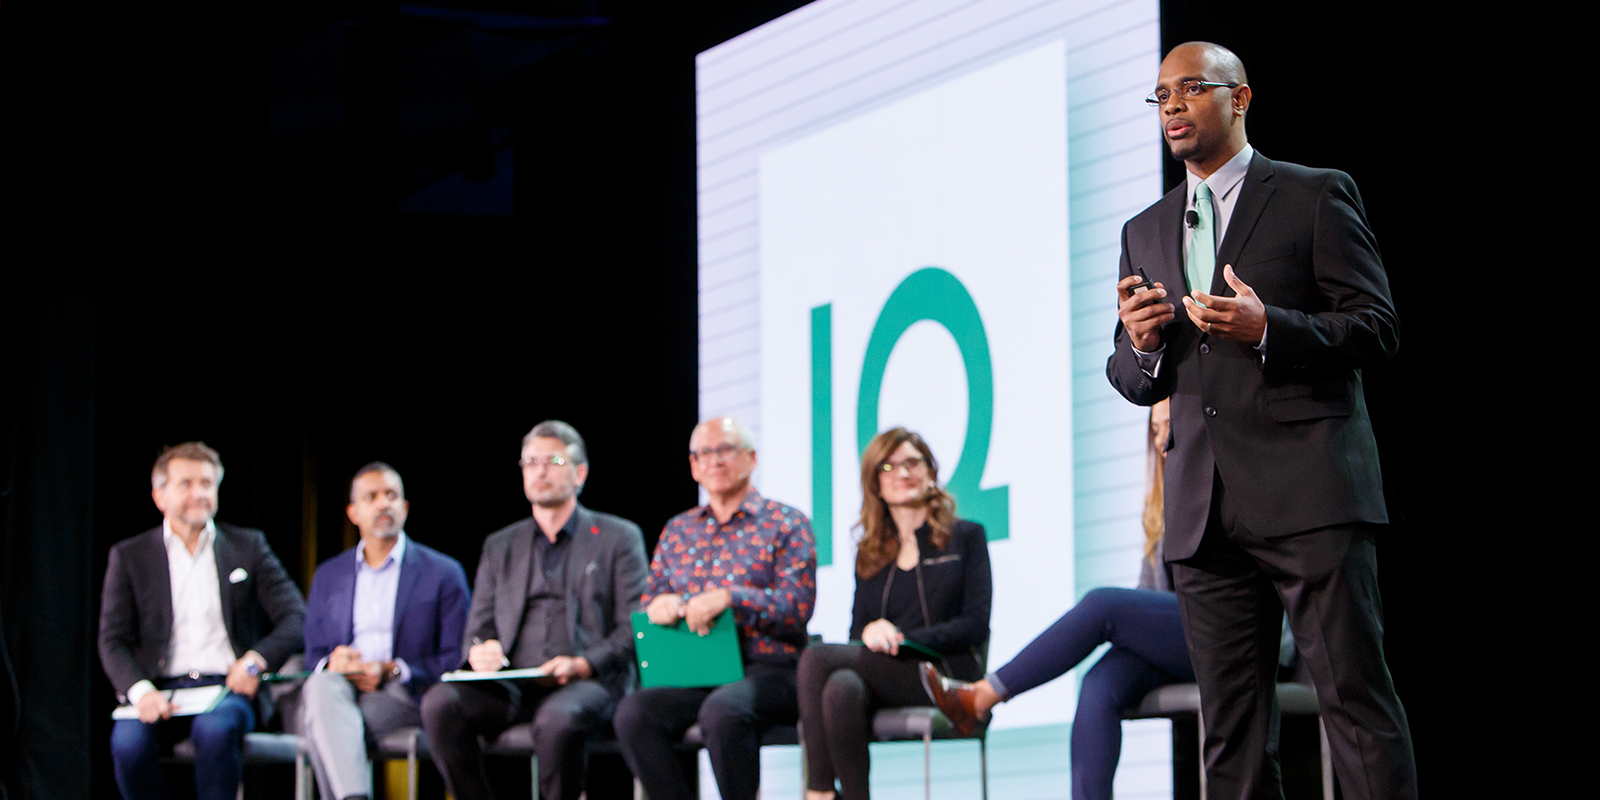 First-ever Innovation Quest winner announced at LINC 2019